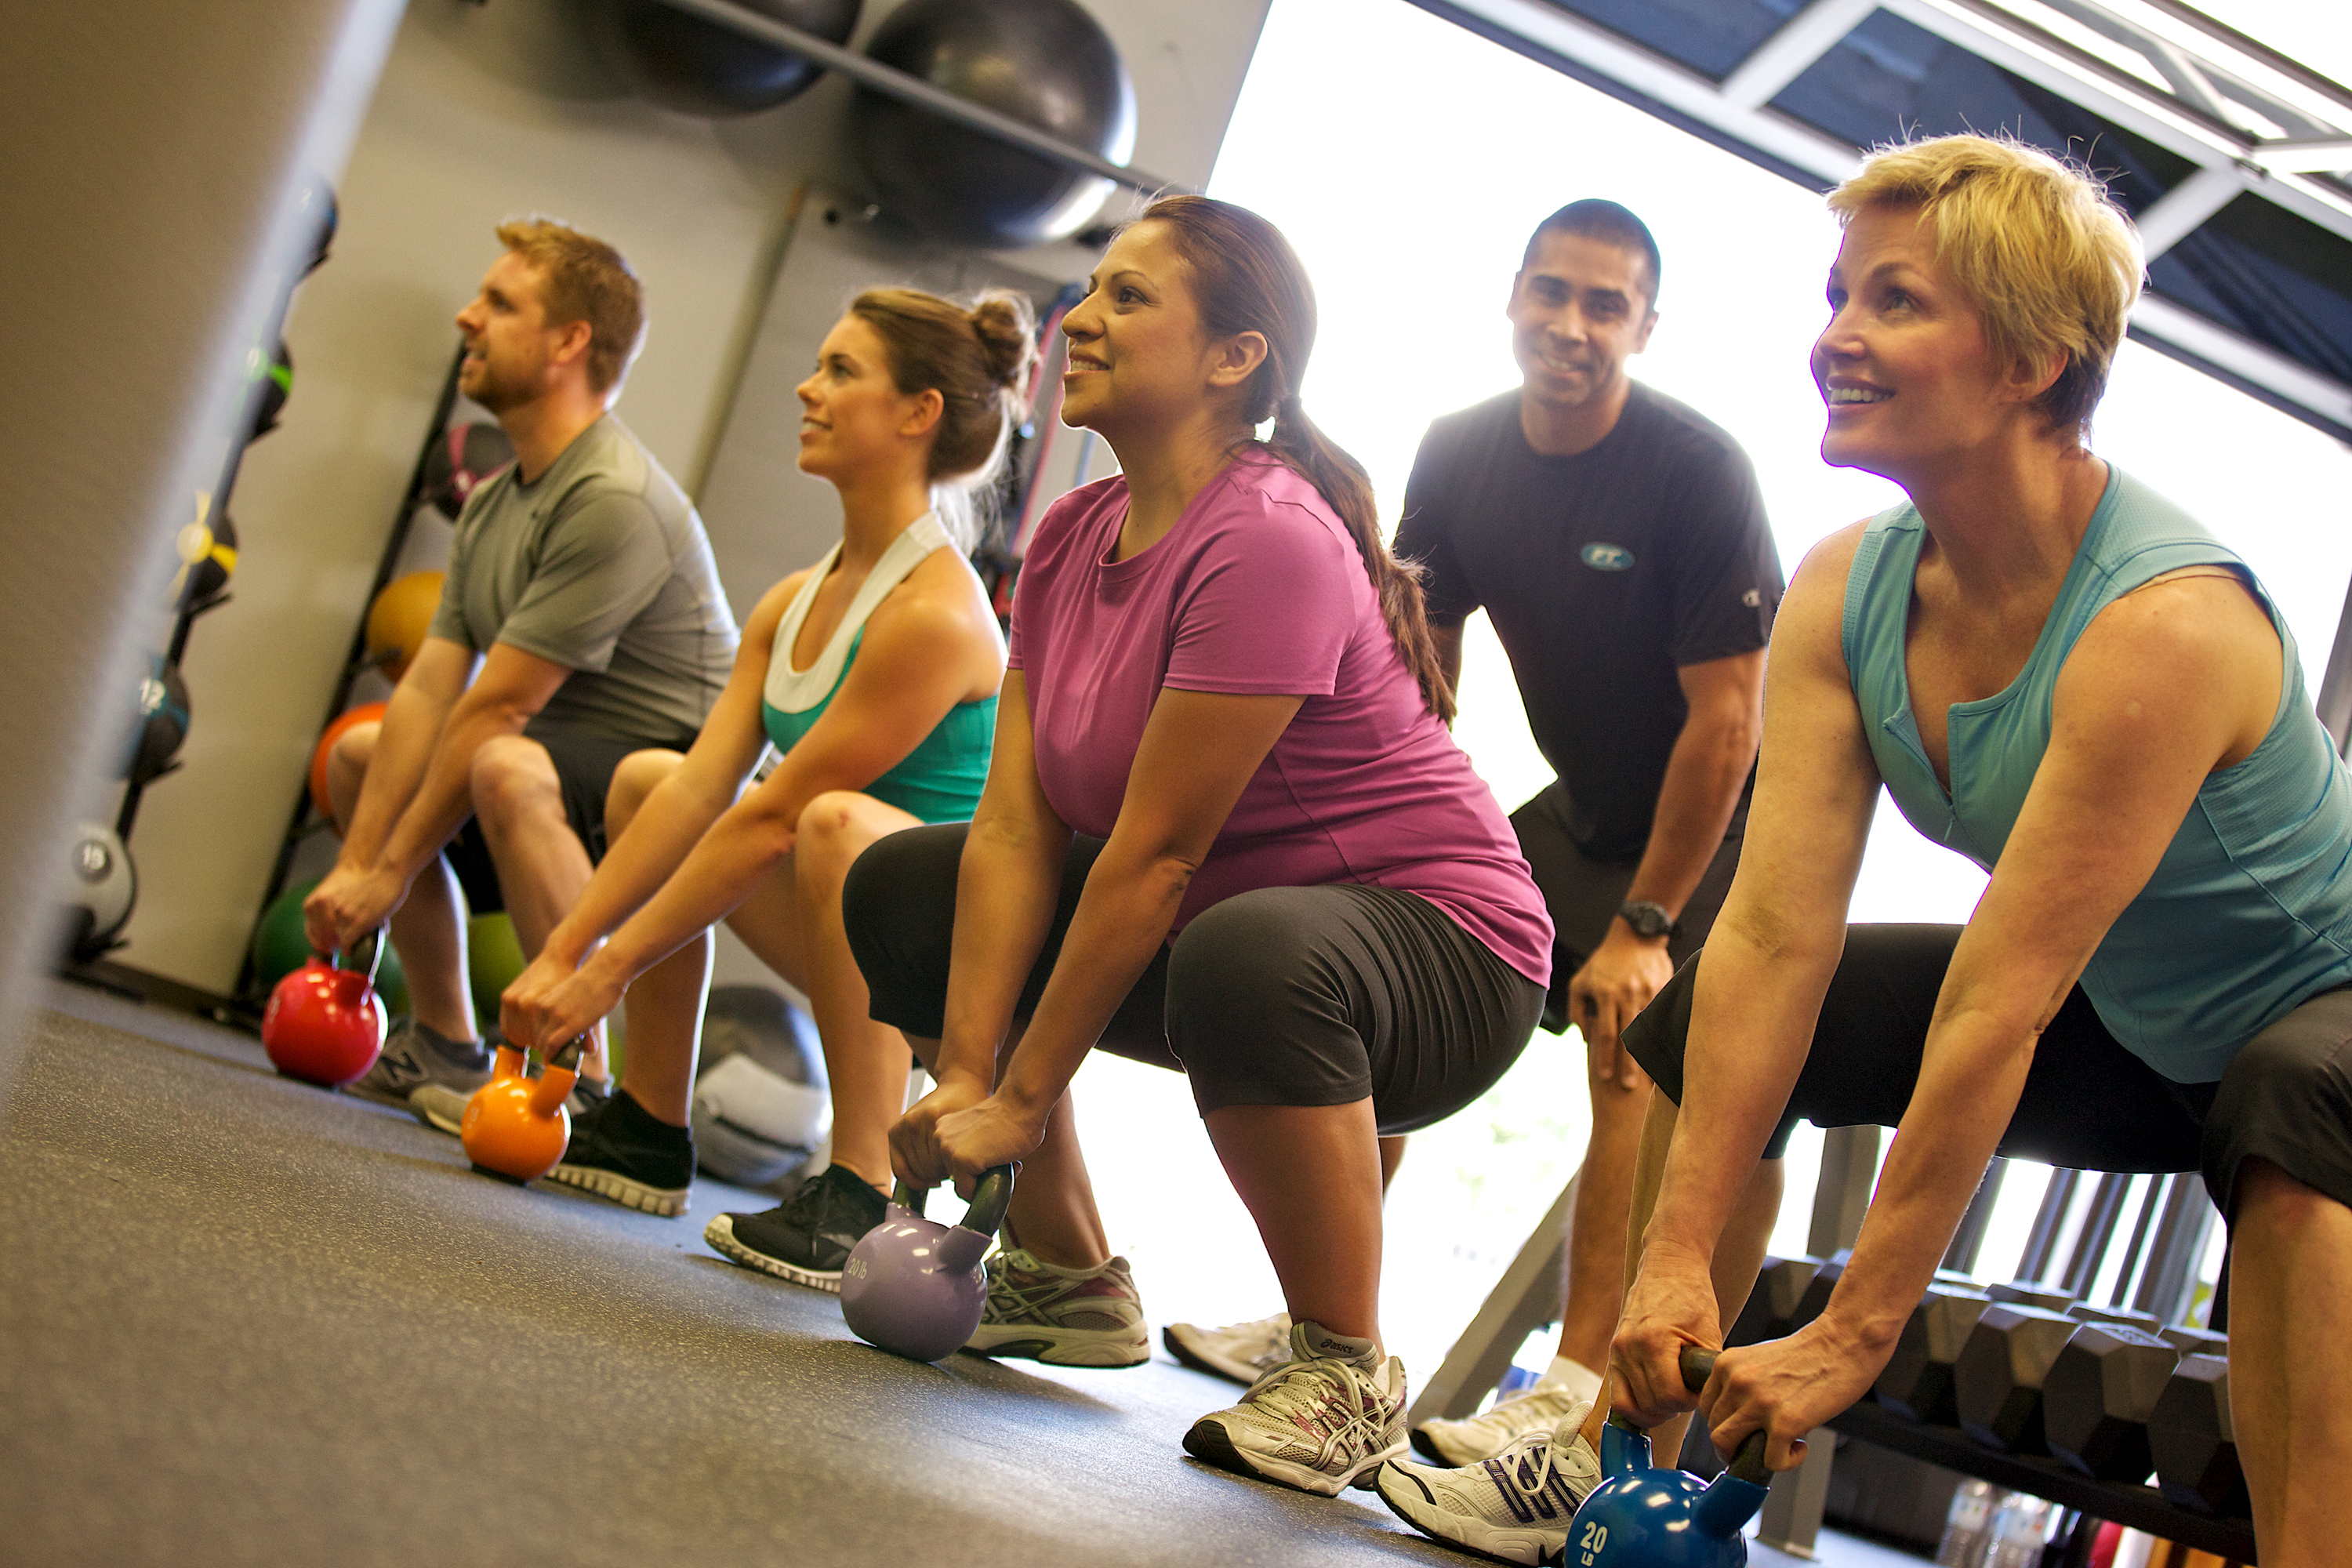 Energize Your Exercise Experience - Blog - Auburn - Fitness Together